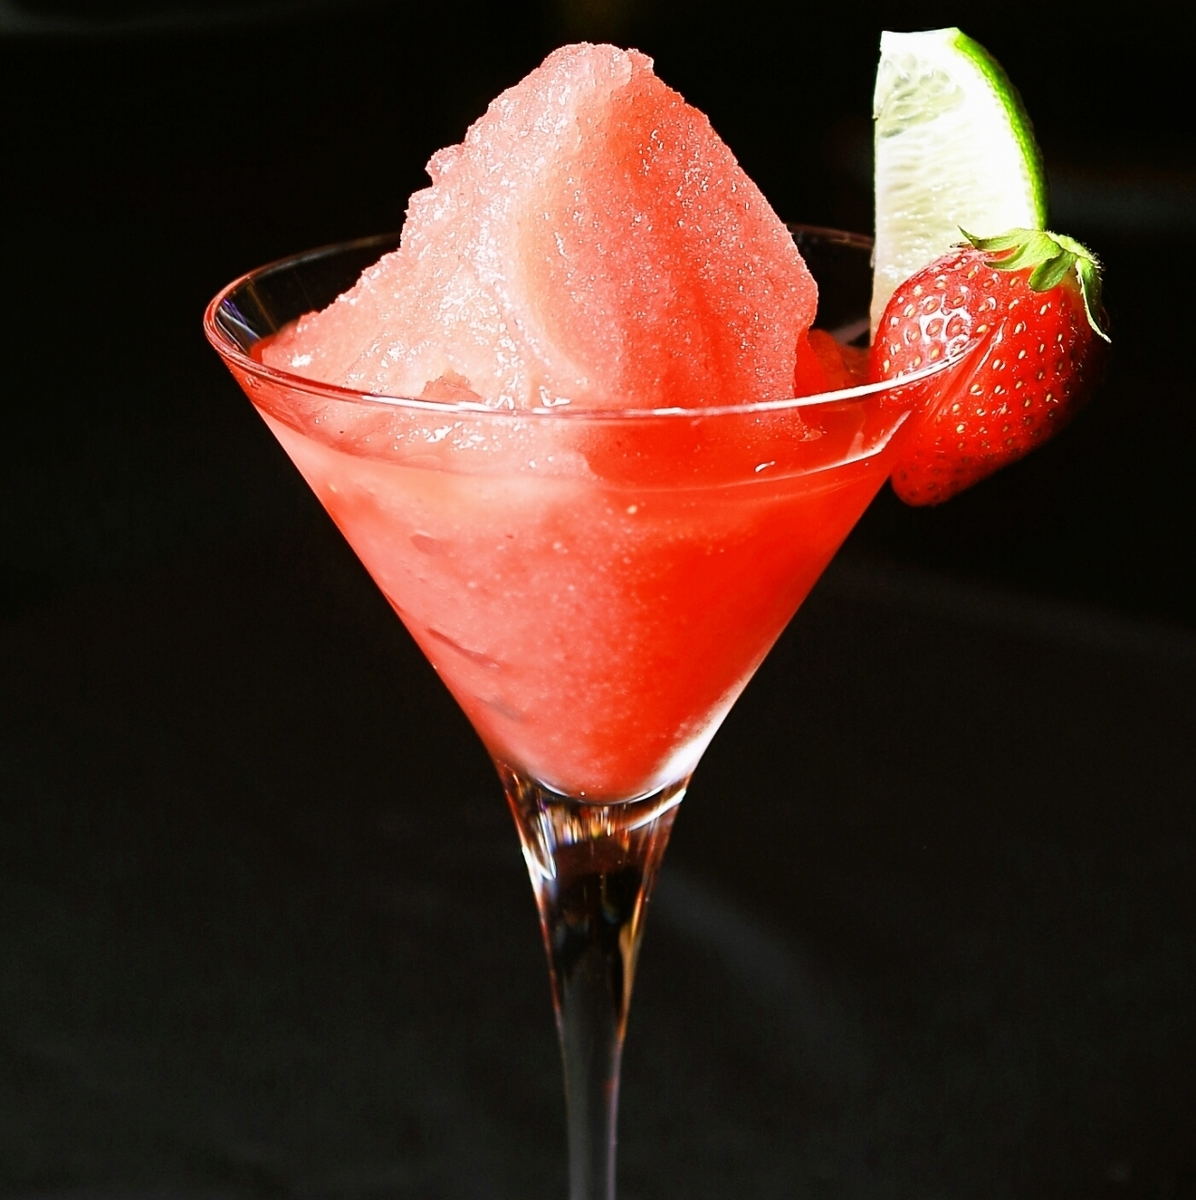 Dessert style cocktail ☆ Frozen strawberry margarita Strawberry Margarita ♪